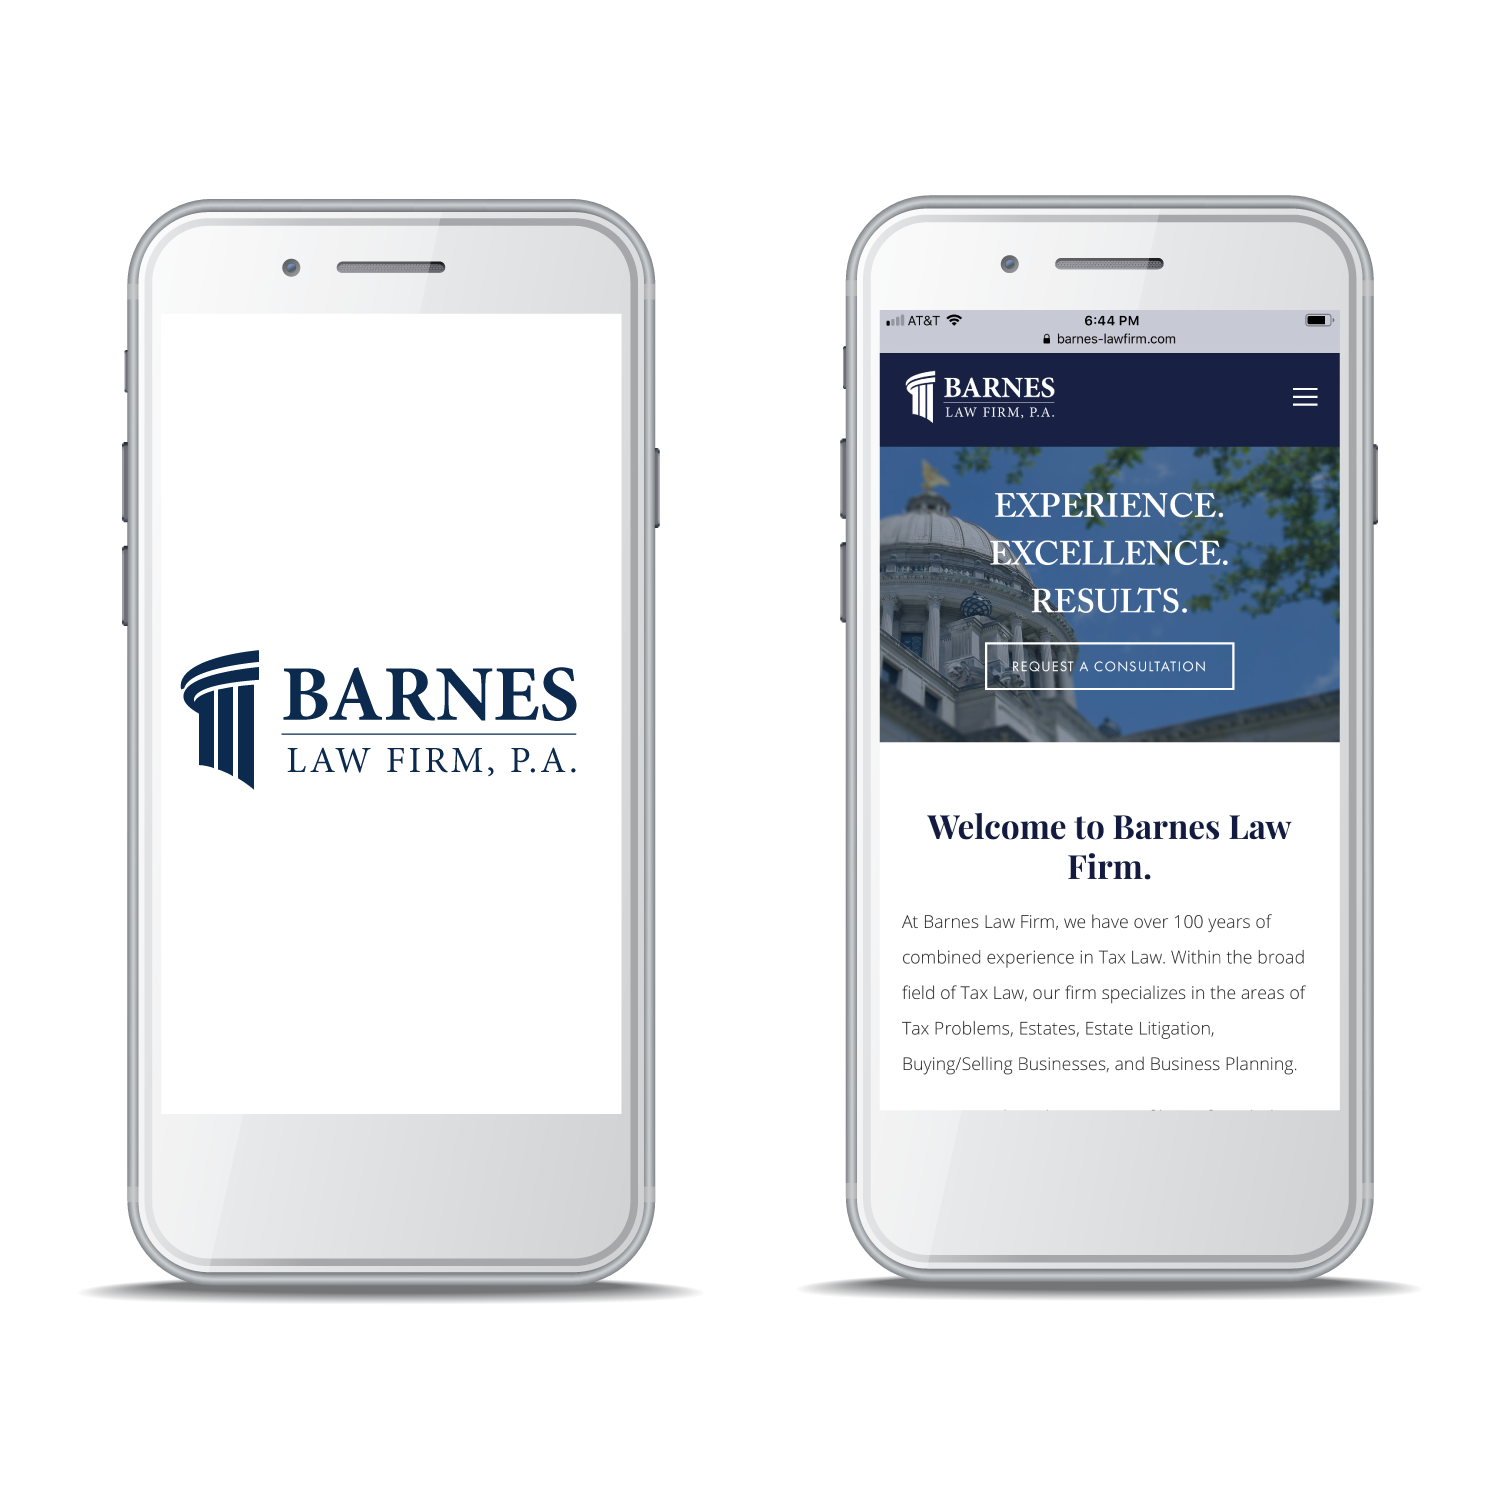 Barnes Law Firm, P.A. - Branding, Logo Design, Mobile Website Design and Development, Search Engine Optimization (SEO)